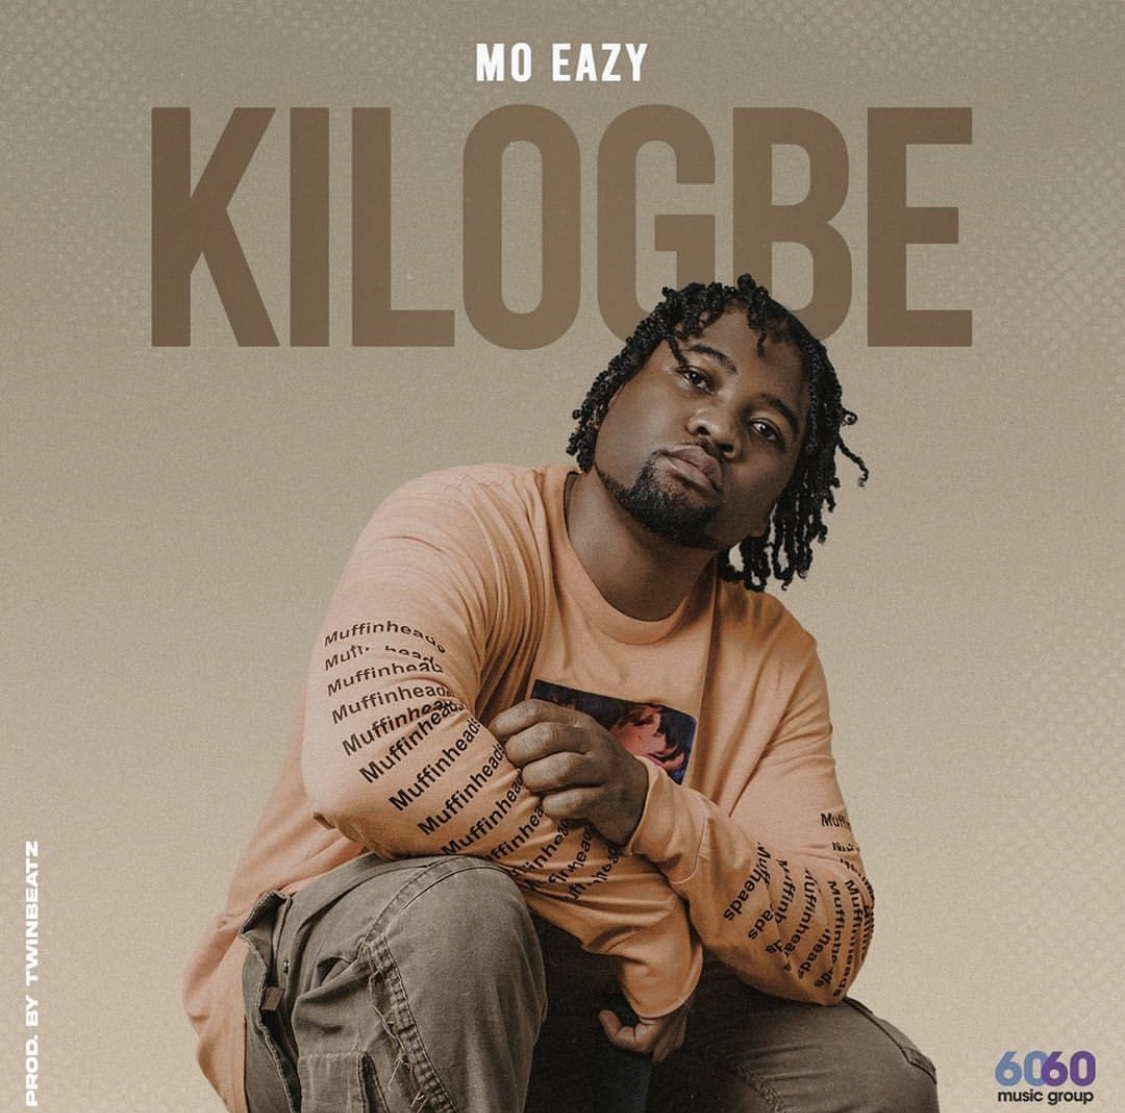 Mo Eazy declares his love for girls with the big backside on new single #Kilogbe